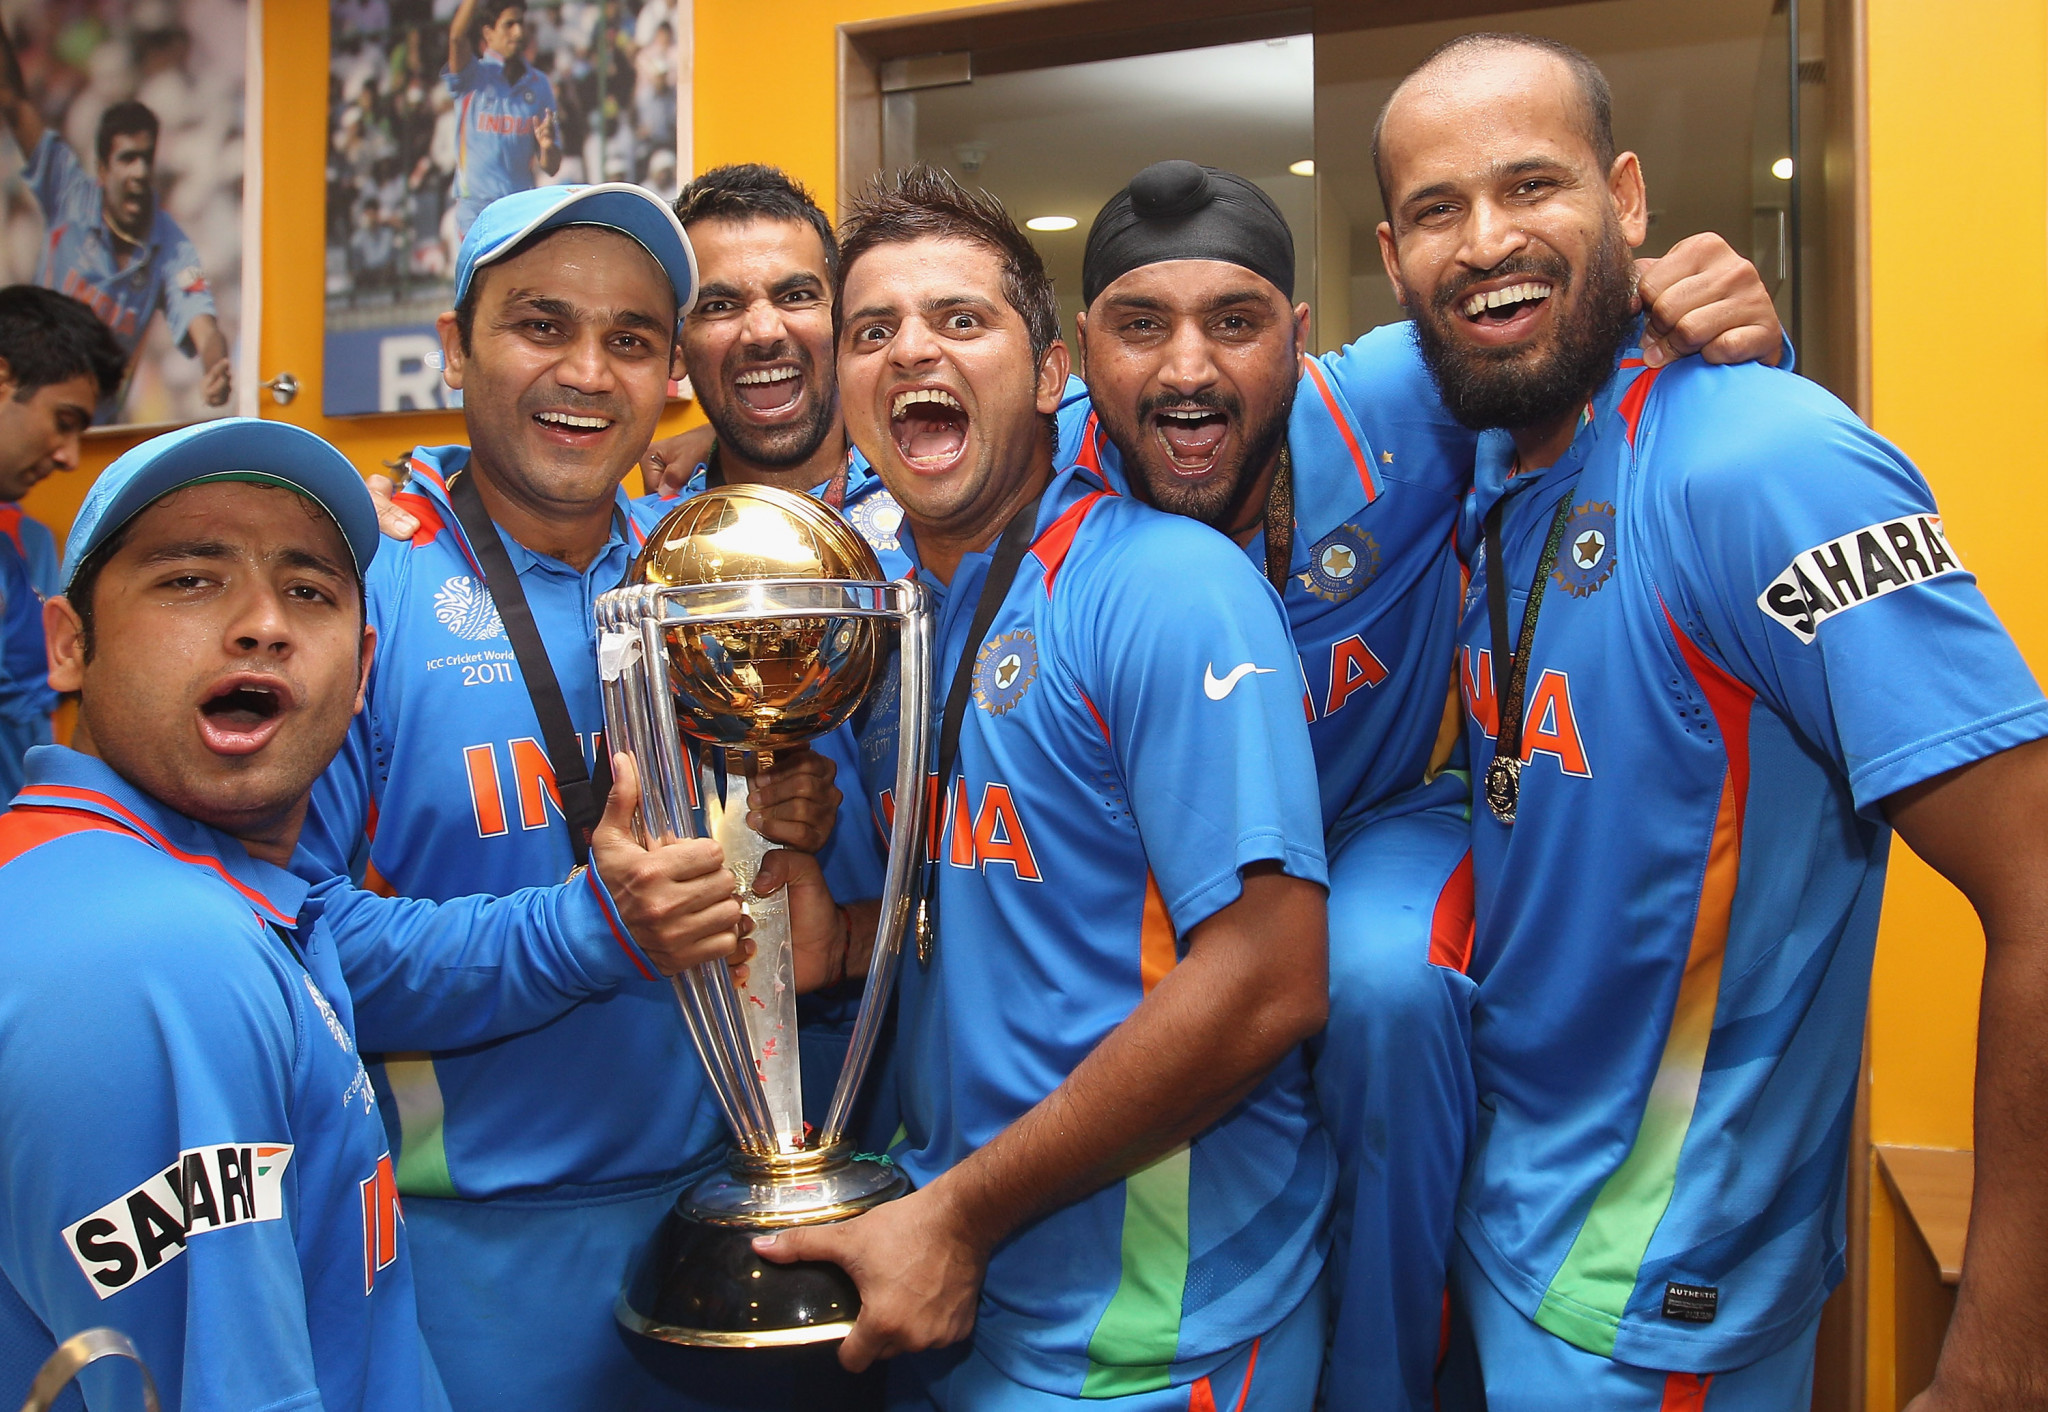 """ICC says it has """"no reason to doubt integrity"""" of 2011 World Cup final"""